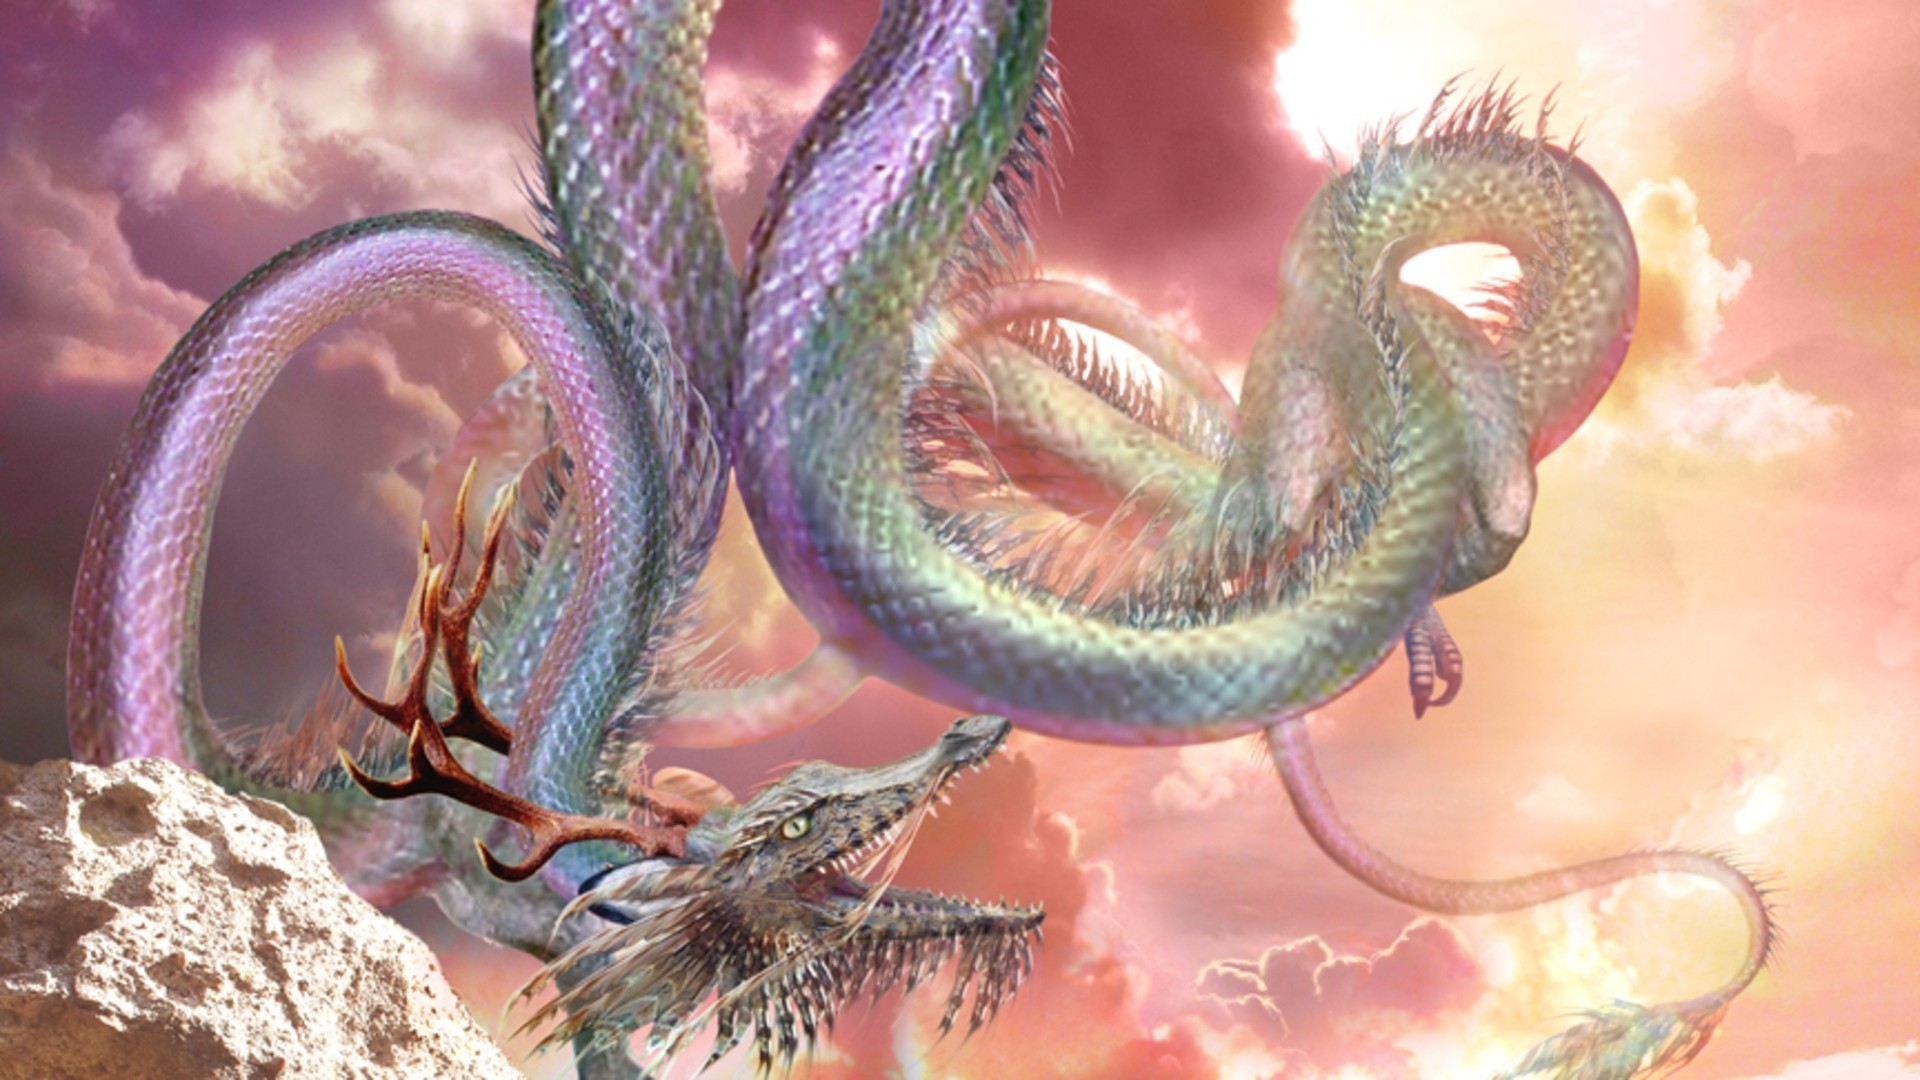 1920x1080, Chinese Dragon Wallpapers Awesome Mighty - Chinese Dragon Wallpaper Anime - HD Wallpaper